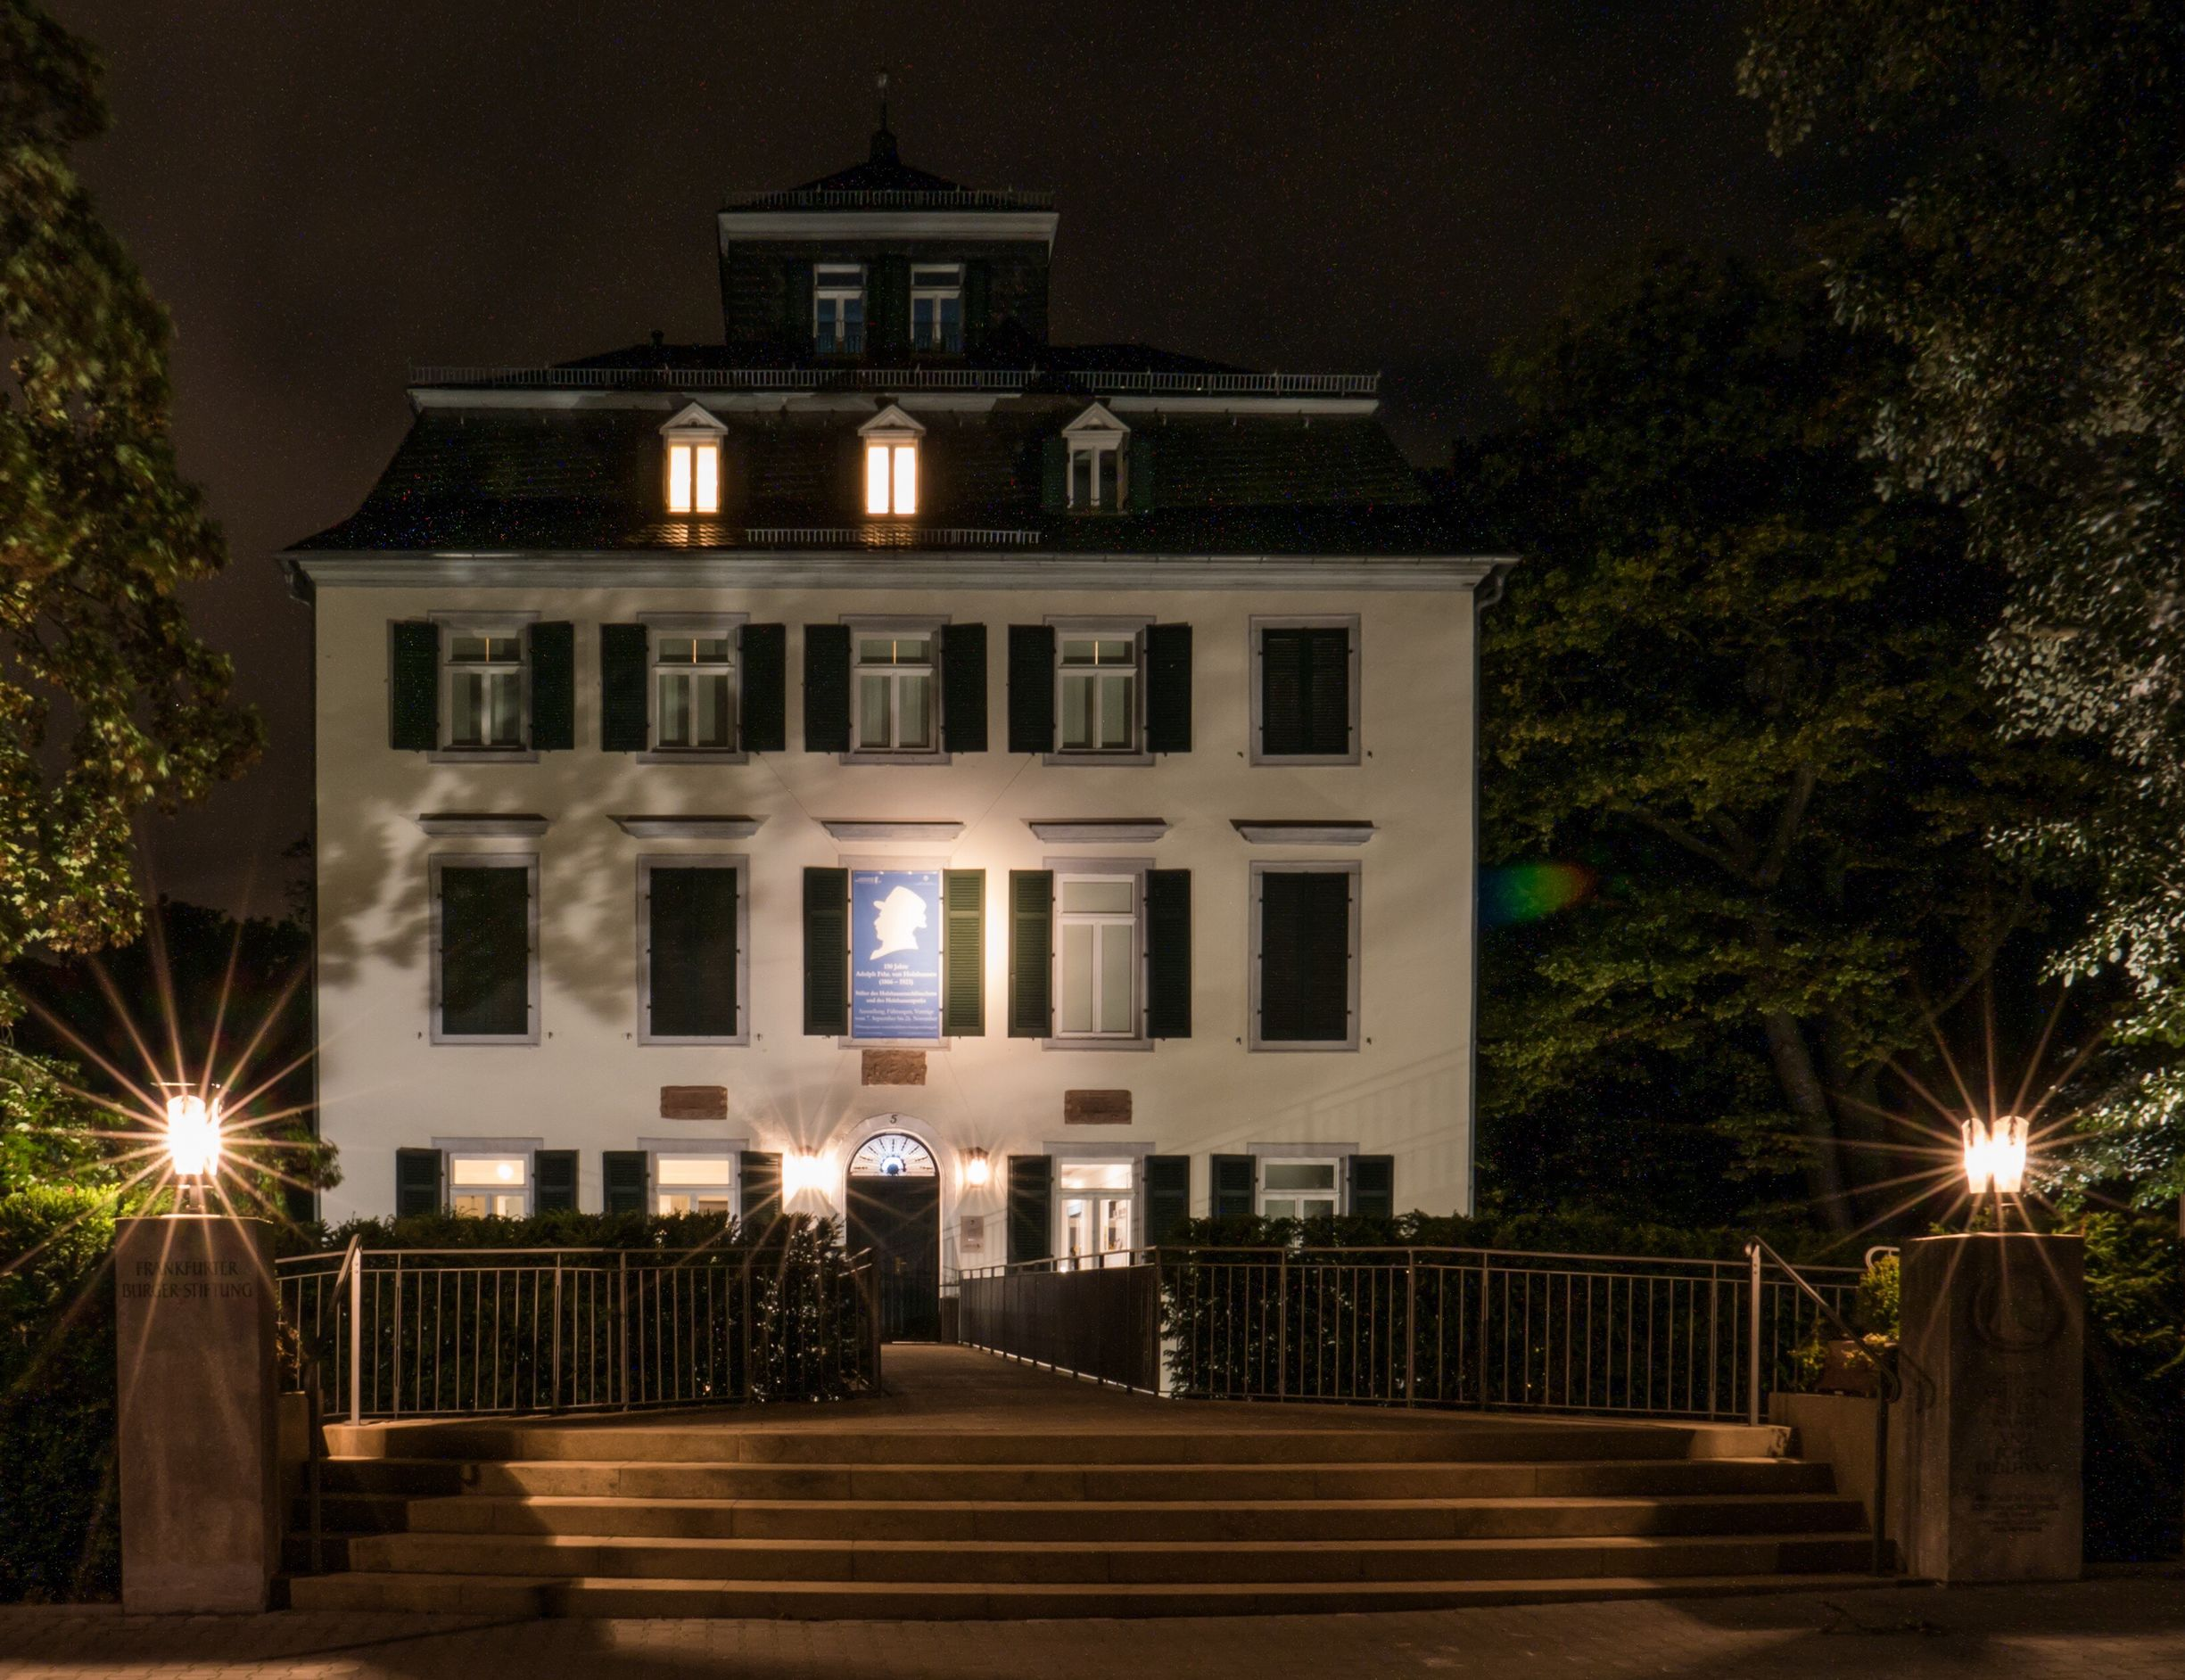 The mansion at night. Illuminated Architecture Building Exterior Built Structure Night Lighting Equipment Street Light City Steps Façade Architectural Column Column Lens Flare Electric Light Sky The Way Forward Outdoors In A Row City Life Modern Frankfurt Frankfurt Am Main Holzhausenschlösschen